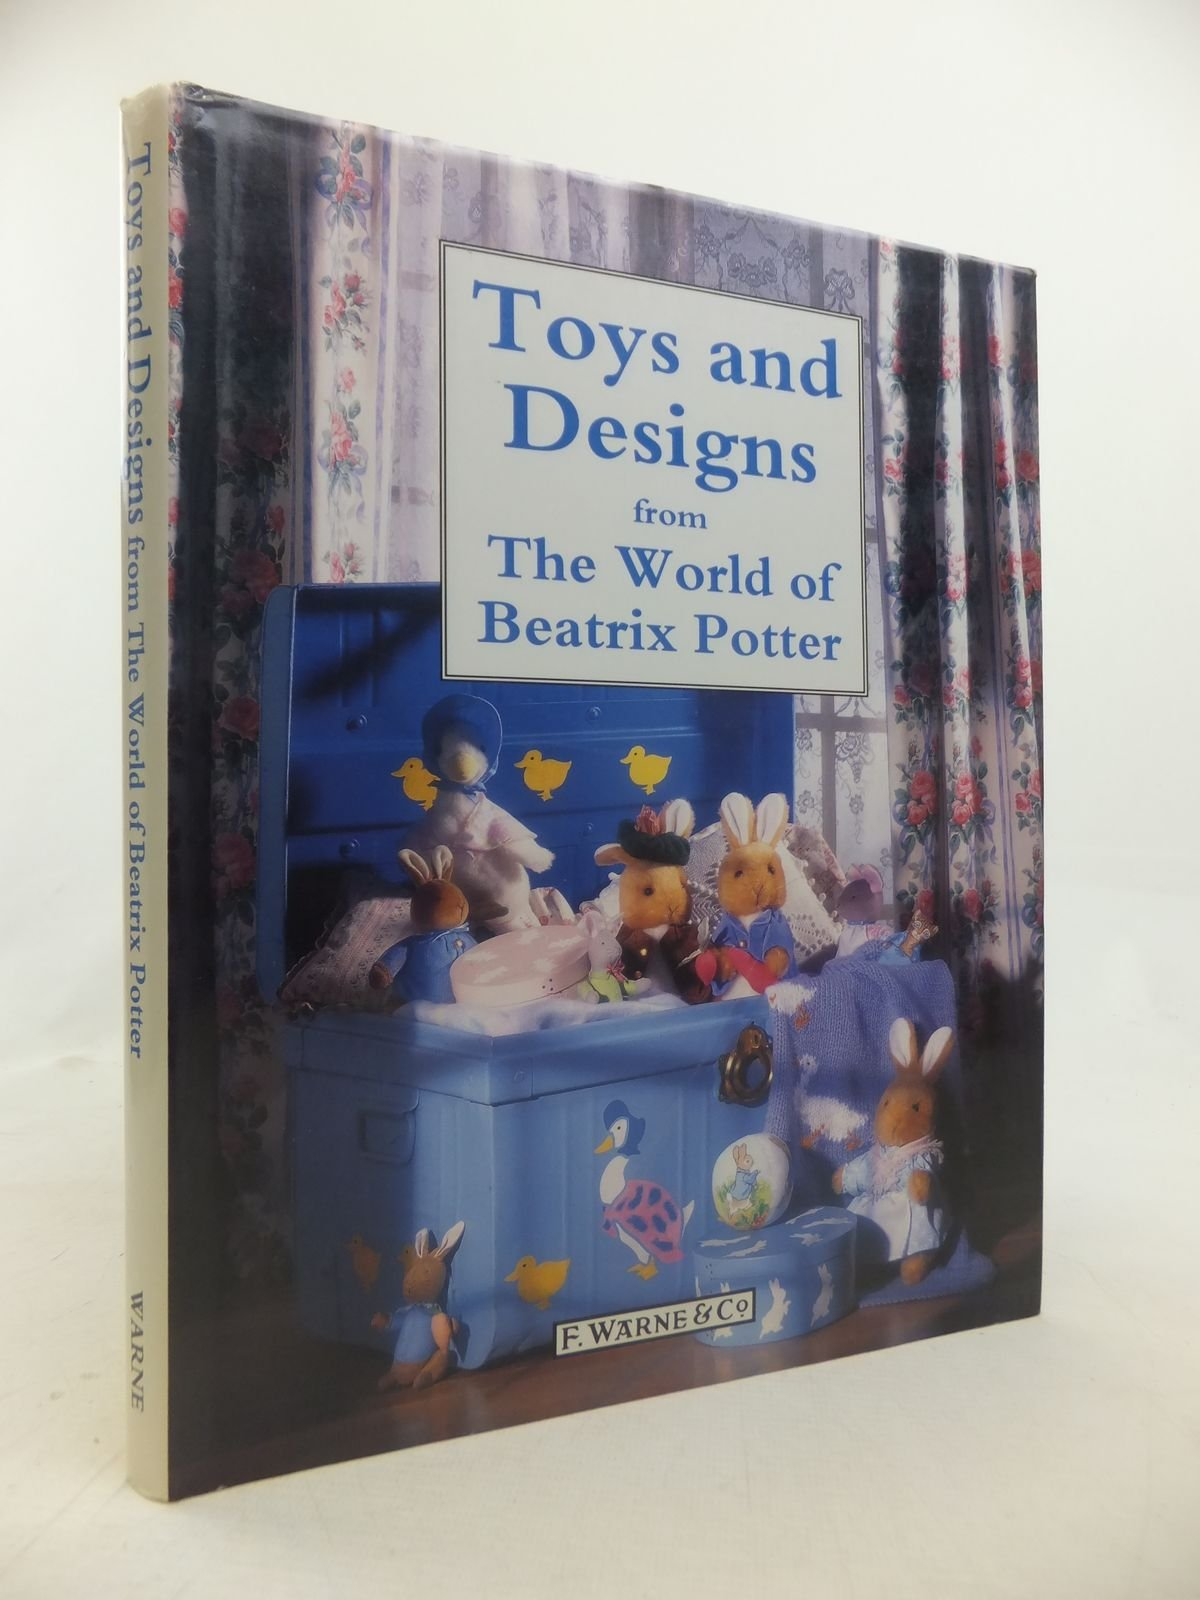 Toys And Designs from the World of Beatrix Potter: Amazon.co.uk ...